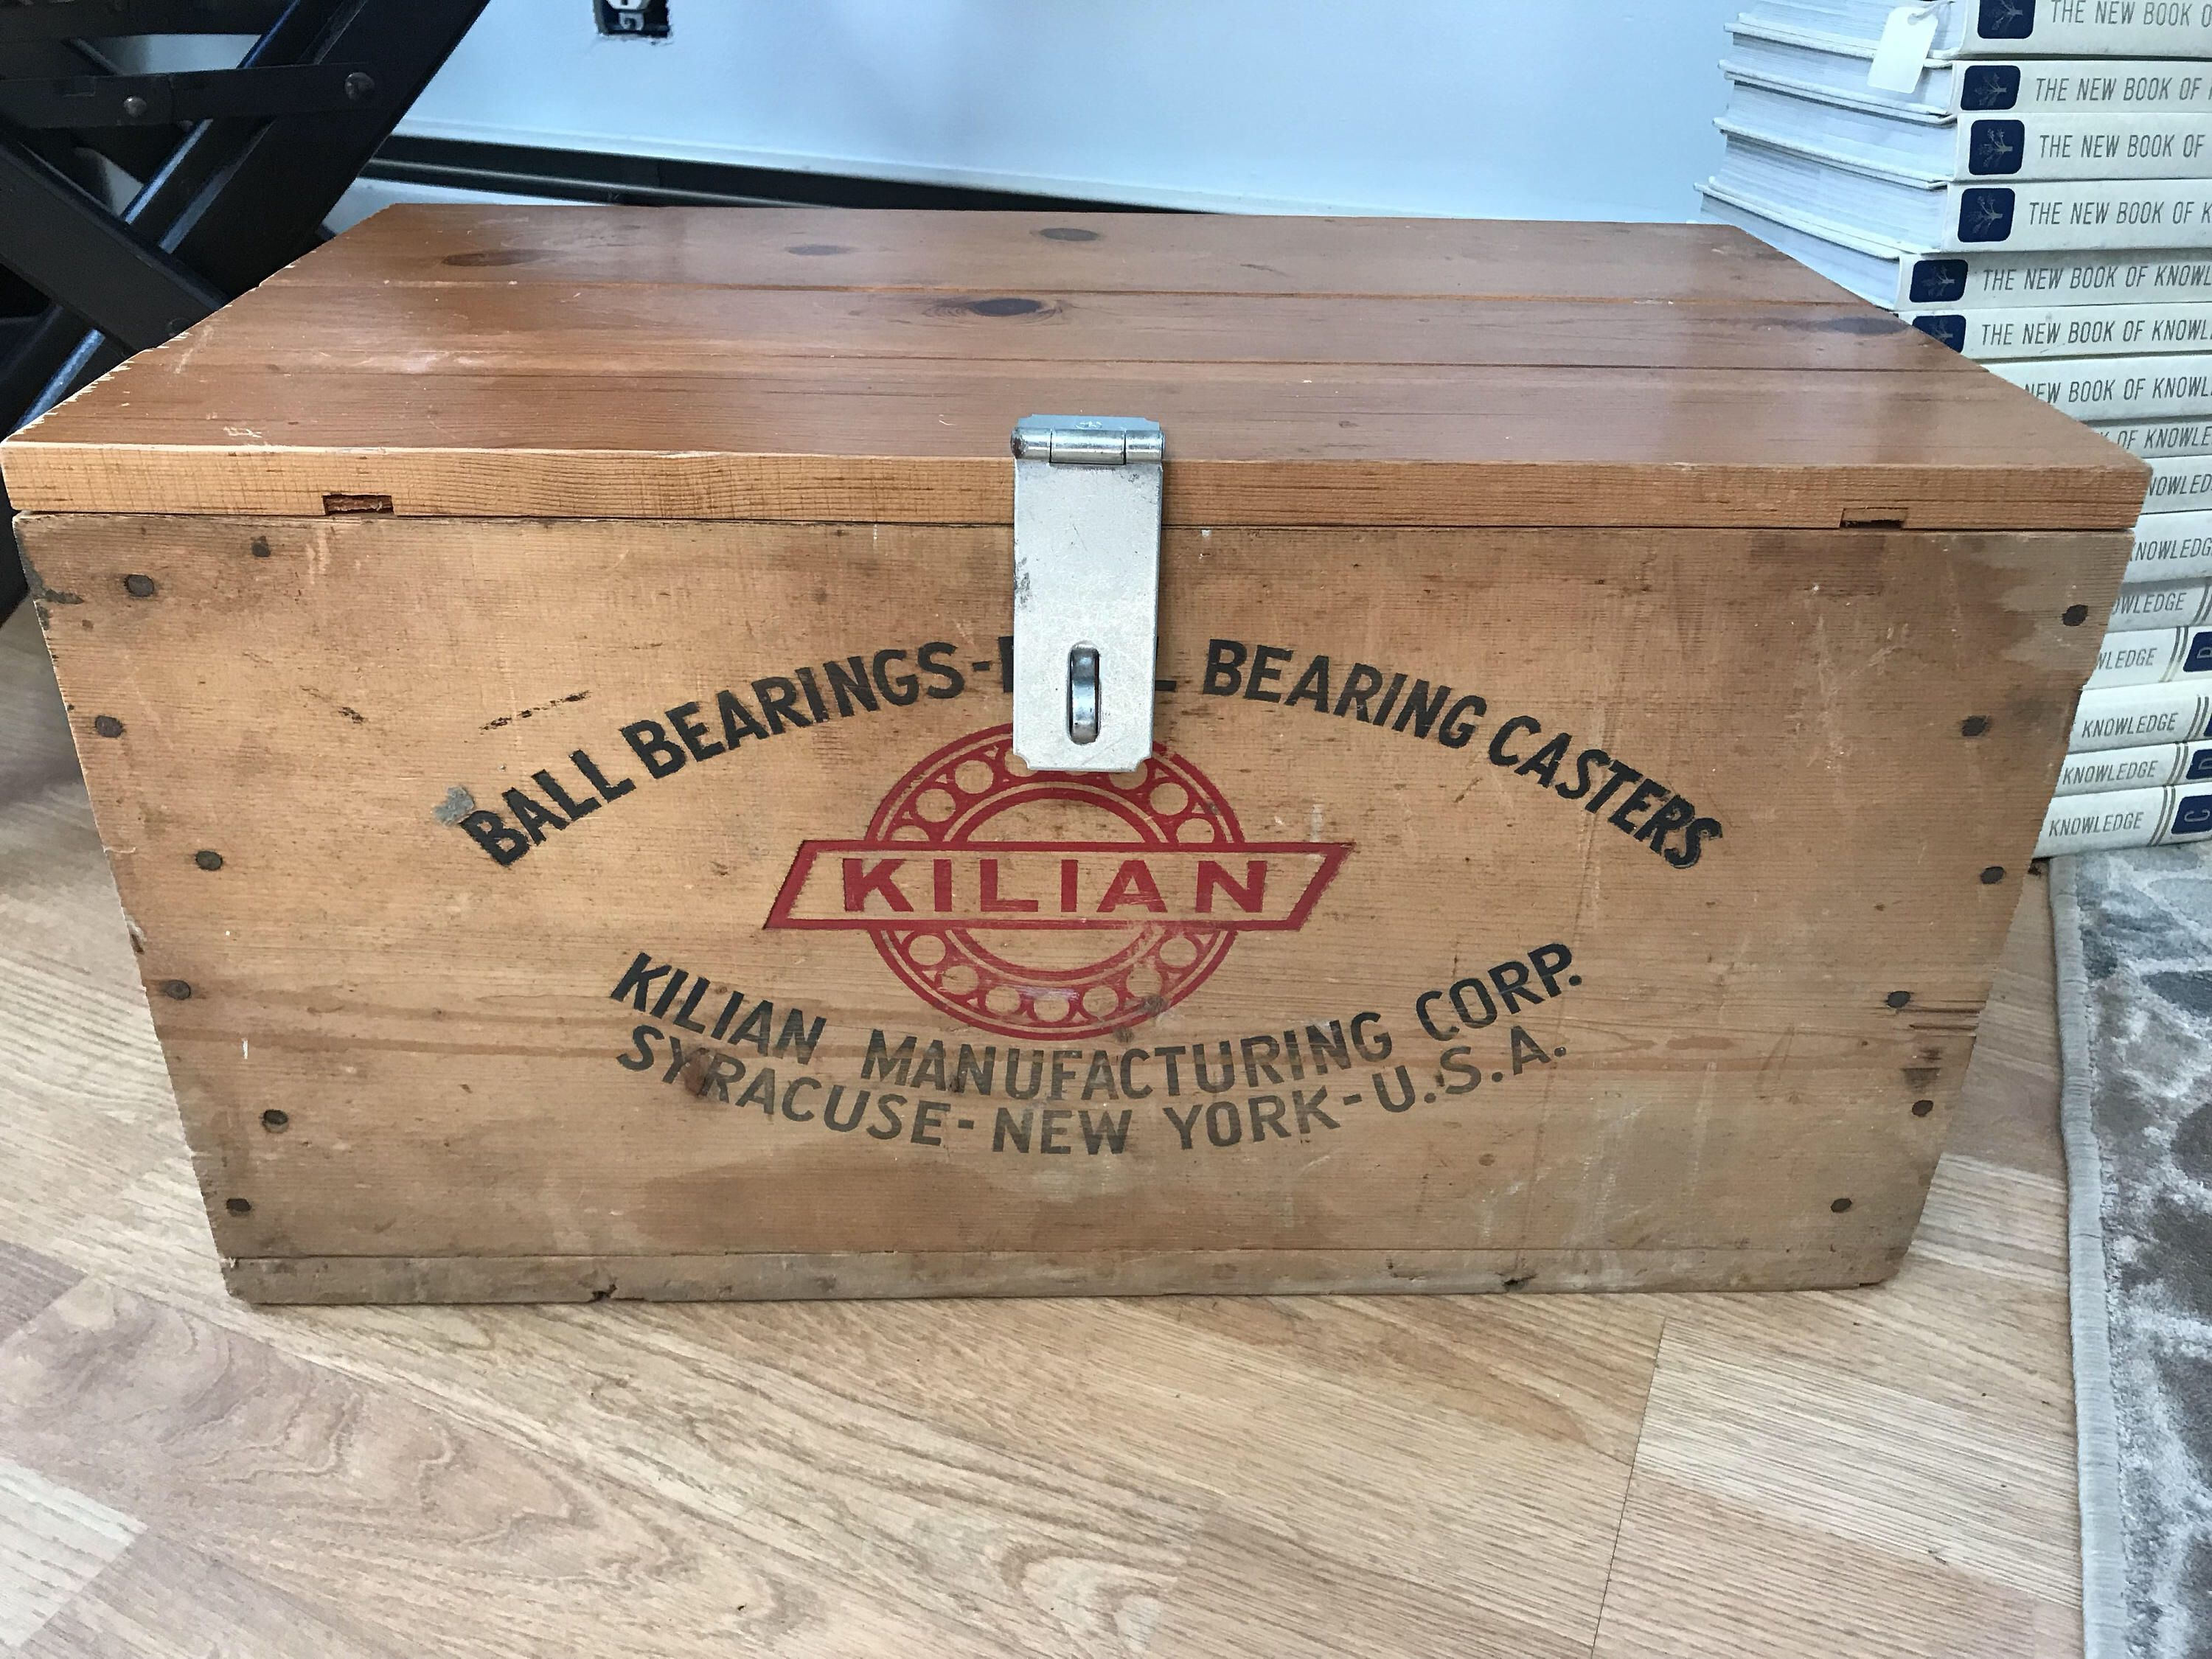 Vintage Kilian Ball Bearings Ball Bearing Casters Lidded Latch Lock Wood